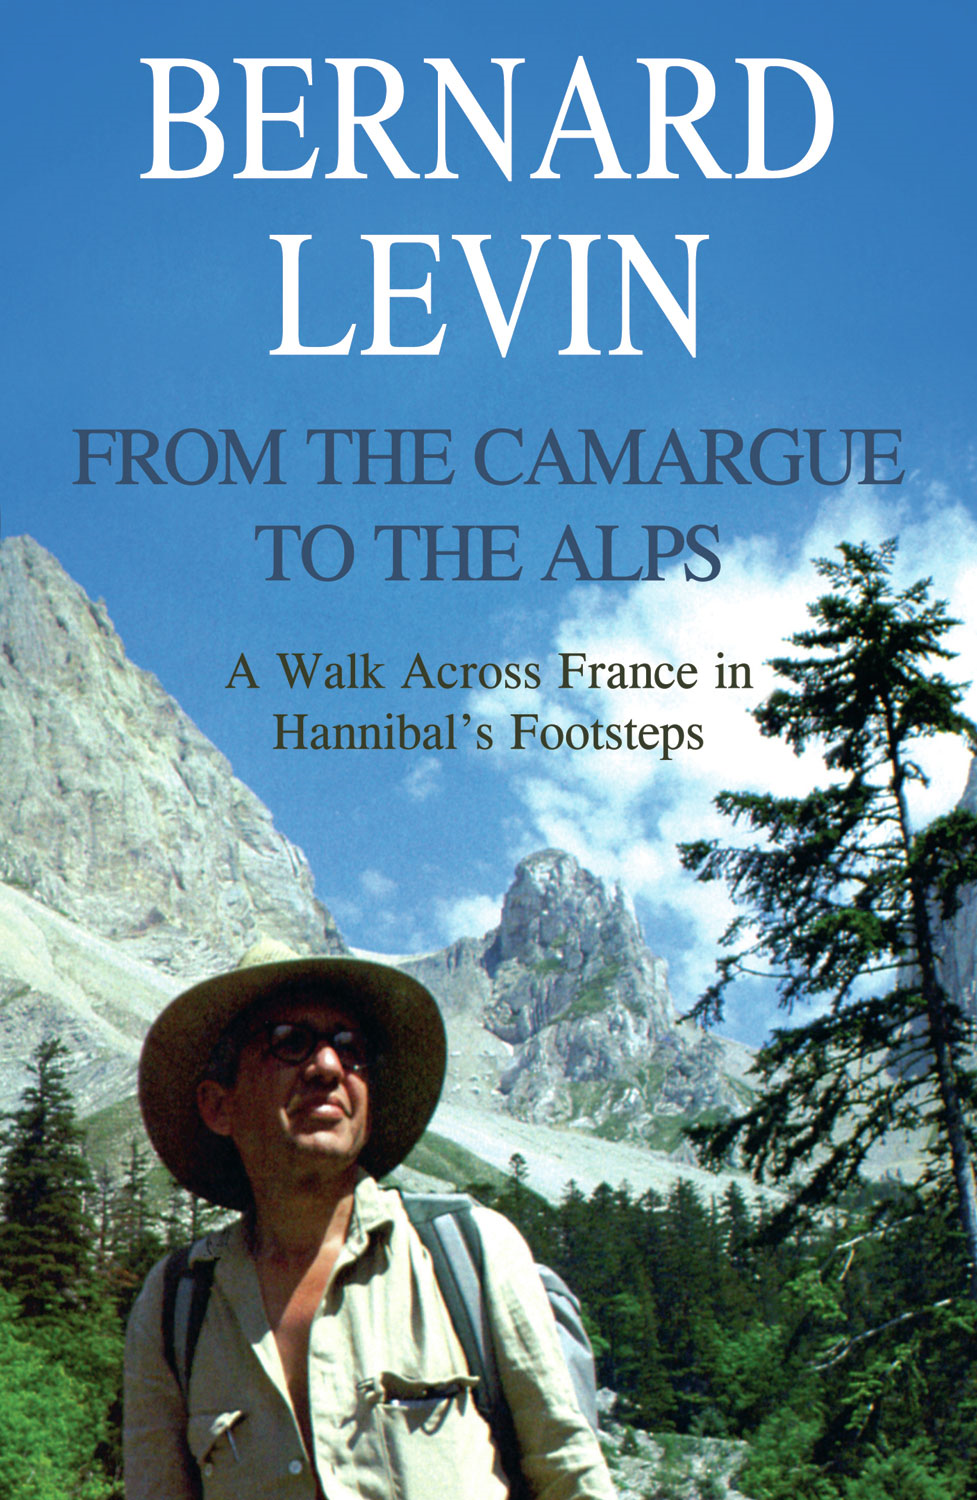 From the Camargue to the Alps: A Walk Across France in Hannibal's Footsteps